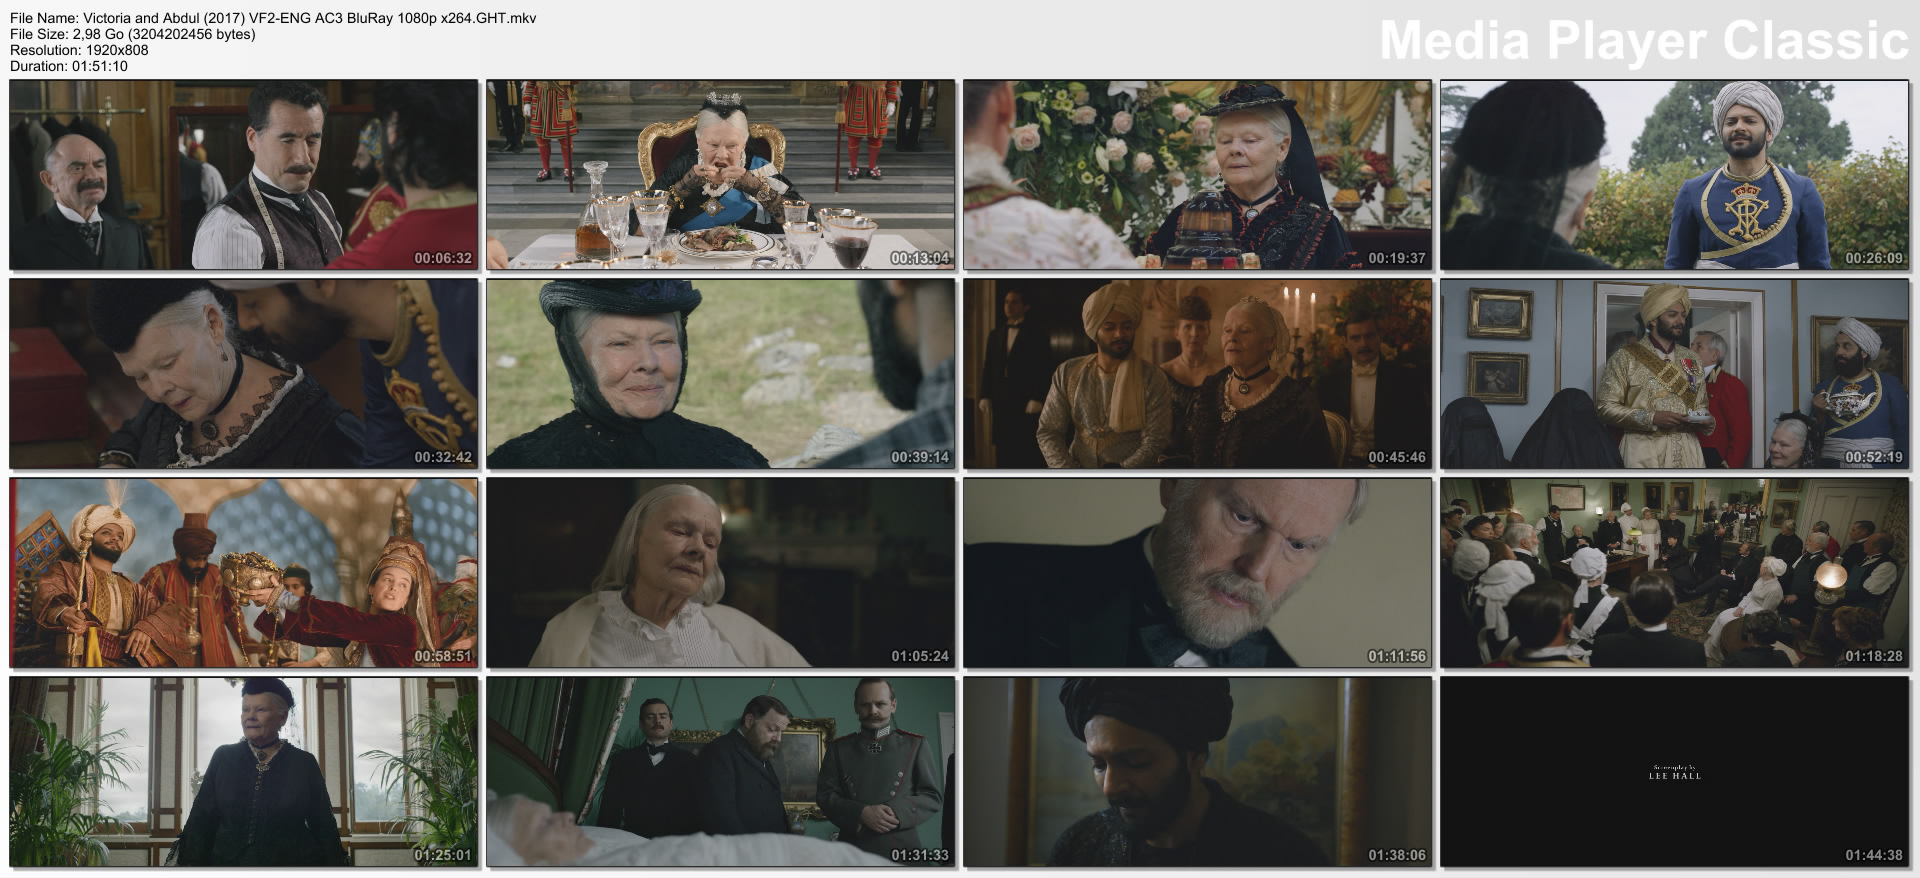 Victoria and Abdul (2017) VF2-ENG AC3 BluRay 1080p x264.GHT